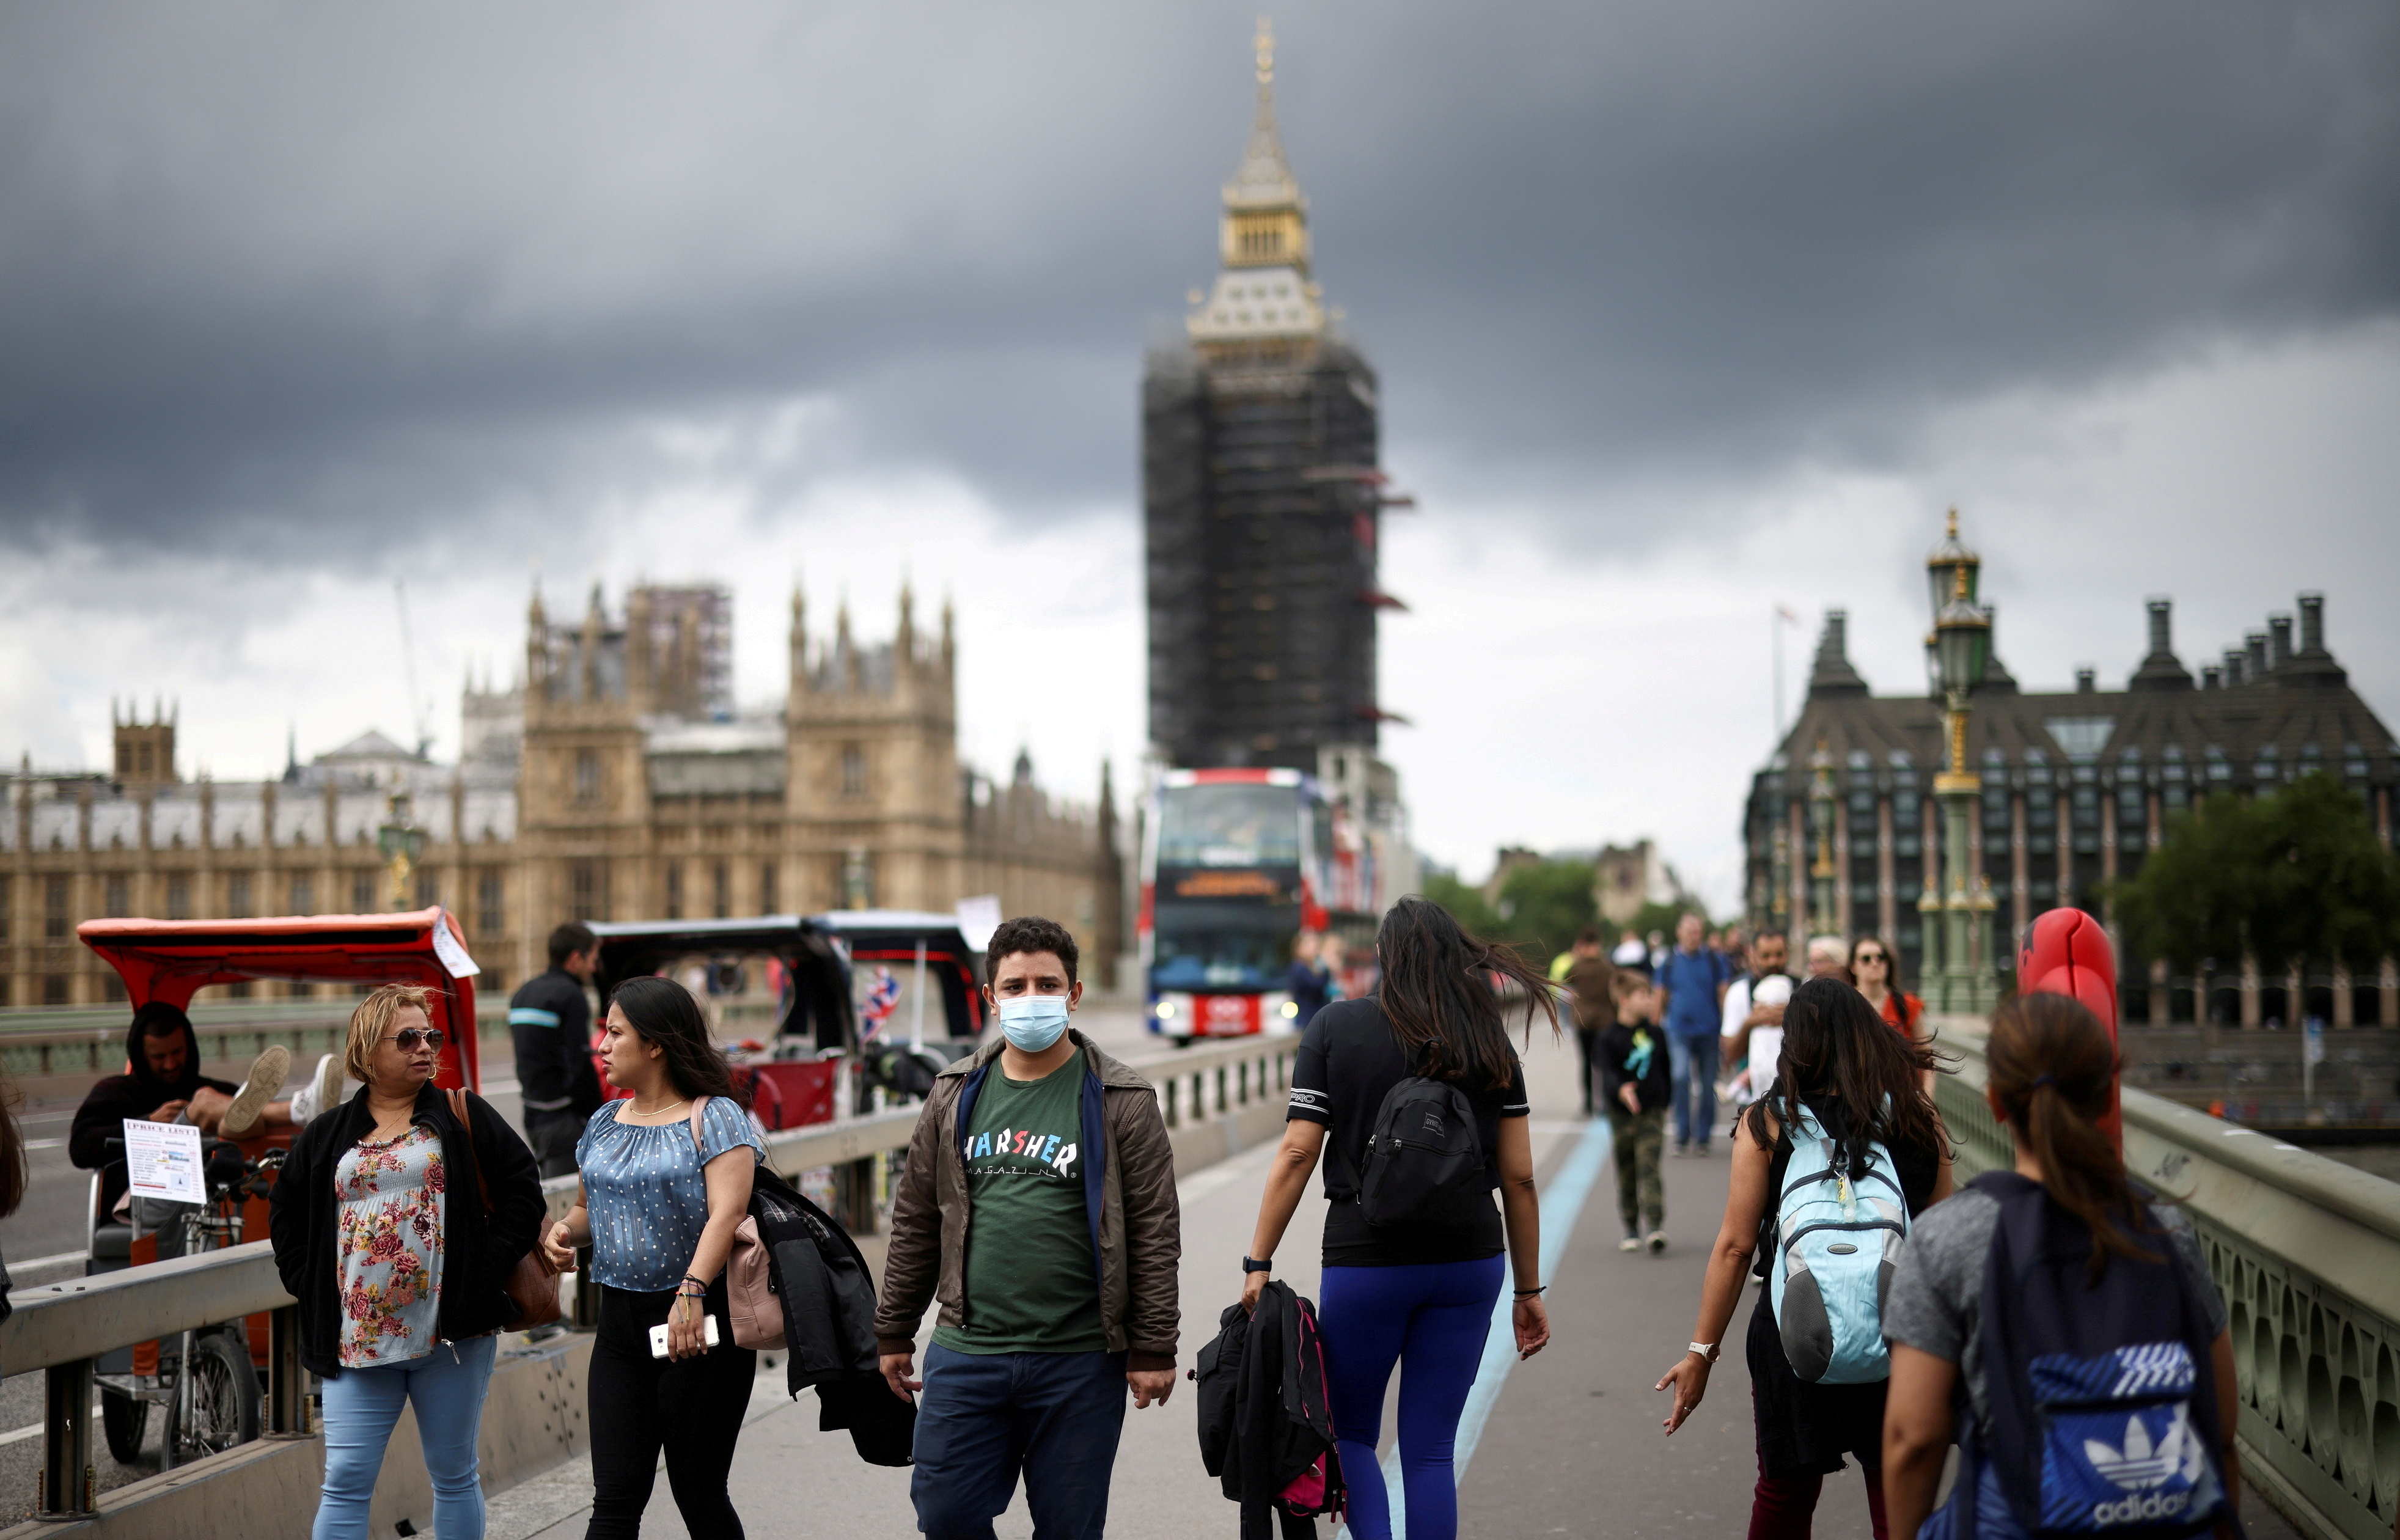 People, some wearing protective face masks, walk over Westminster Bridge, amid the coronavirus disease (COVID-19) pandemic, in London, Britain, July 4, 2021. REUTERS/Henry Nicholls/File Photo